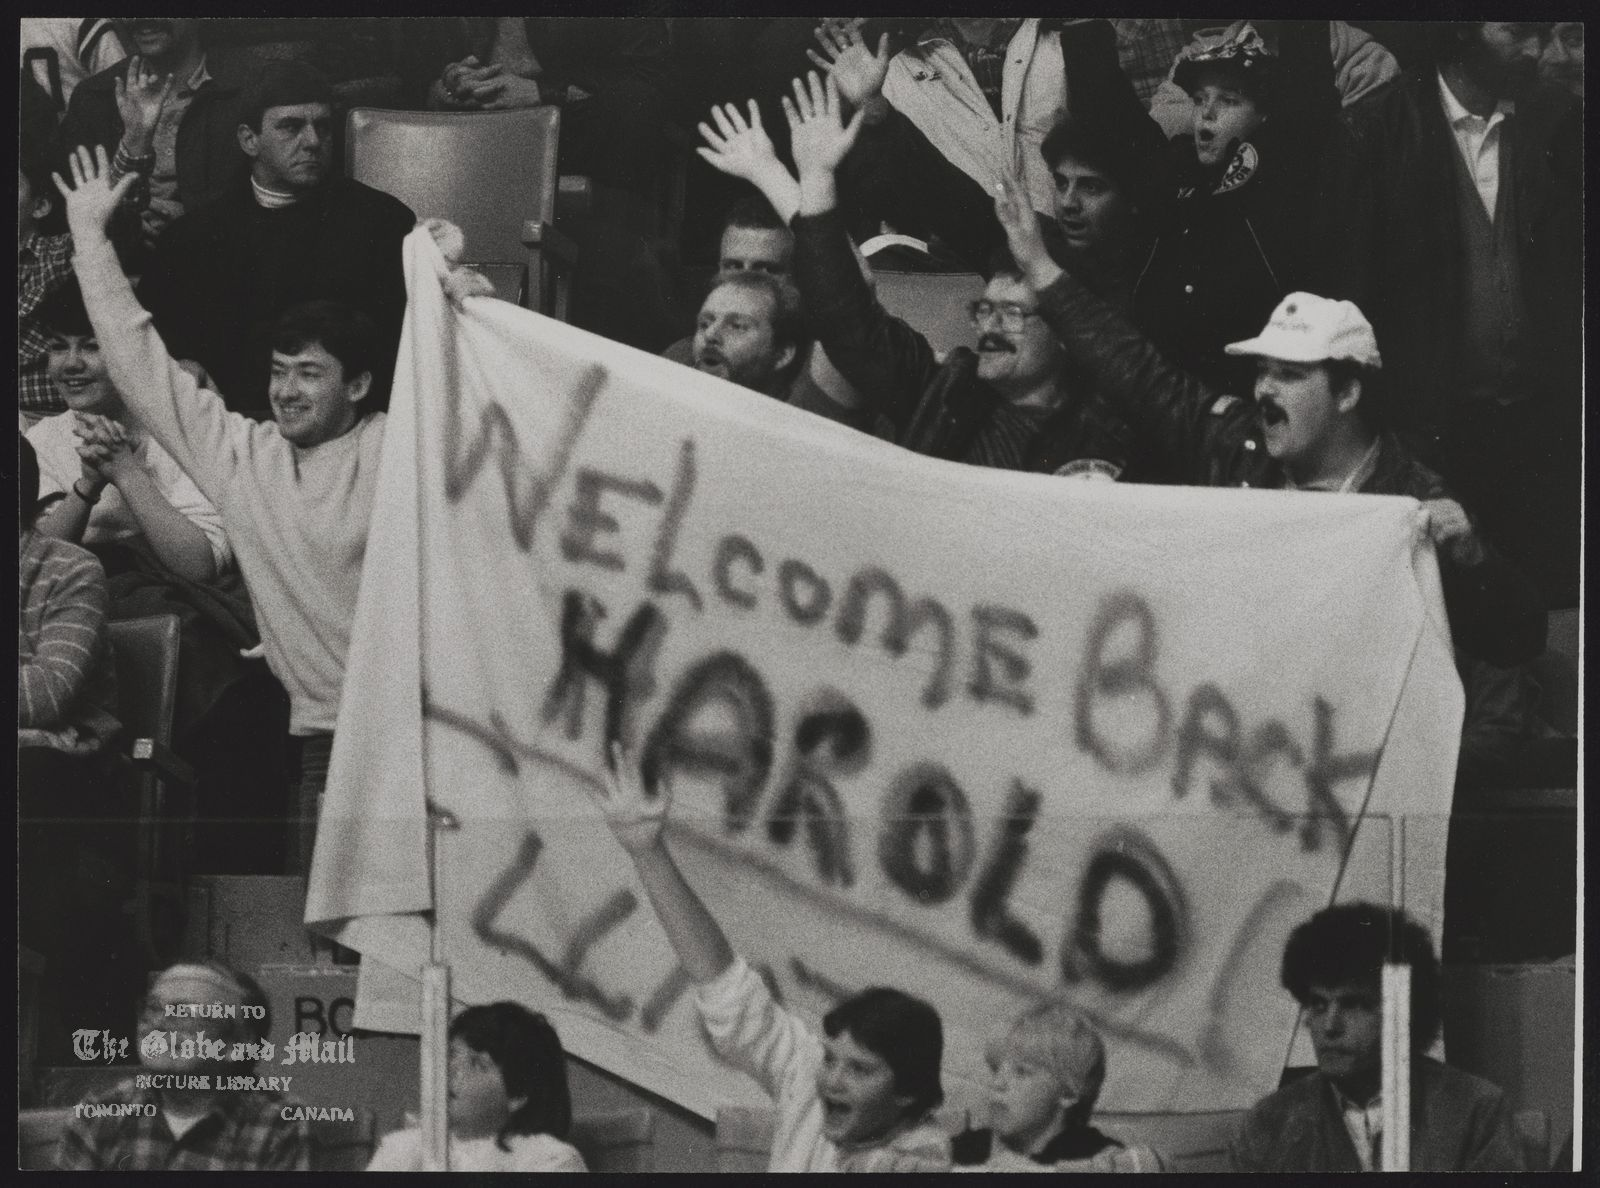 Harold BALLARD Toronto. Businessman Fans salute Leaf boss Harold Ballard, who remains as feisty as ever despite ailments.